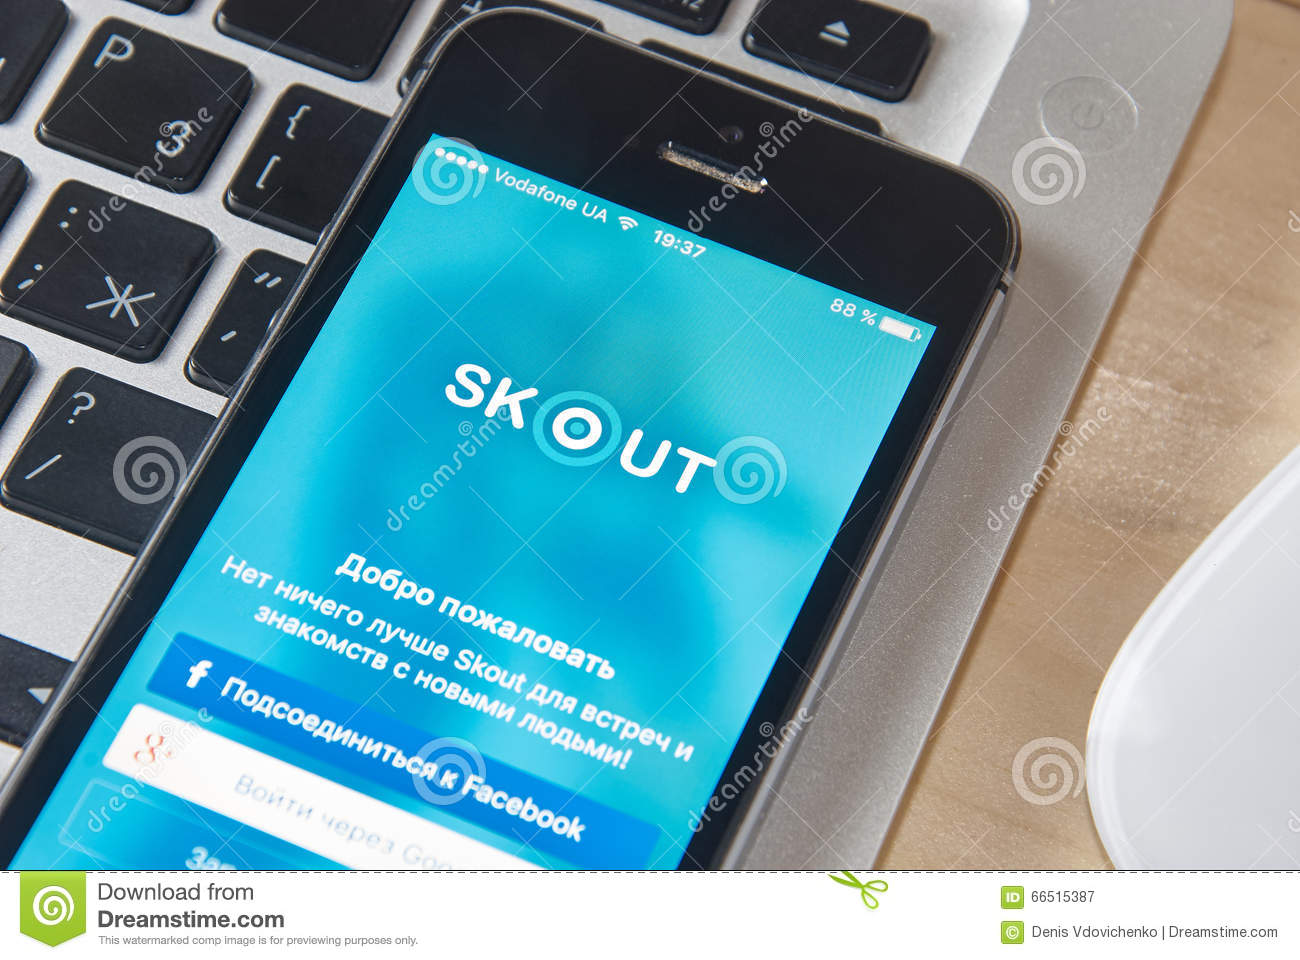 Skout Download